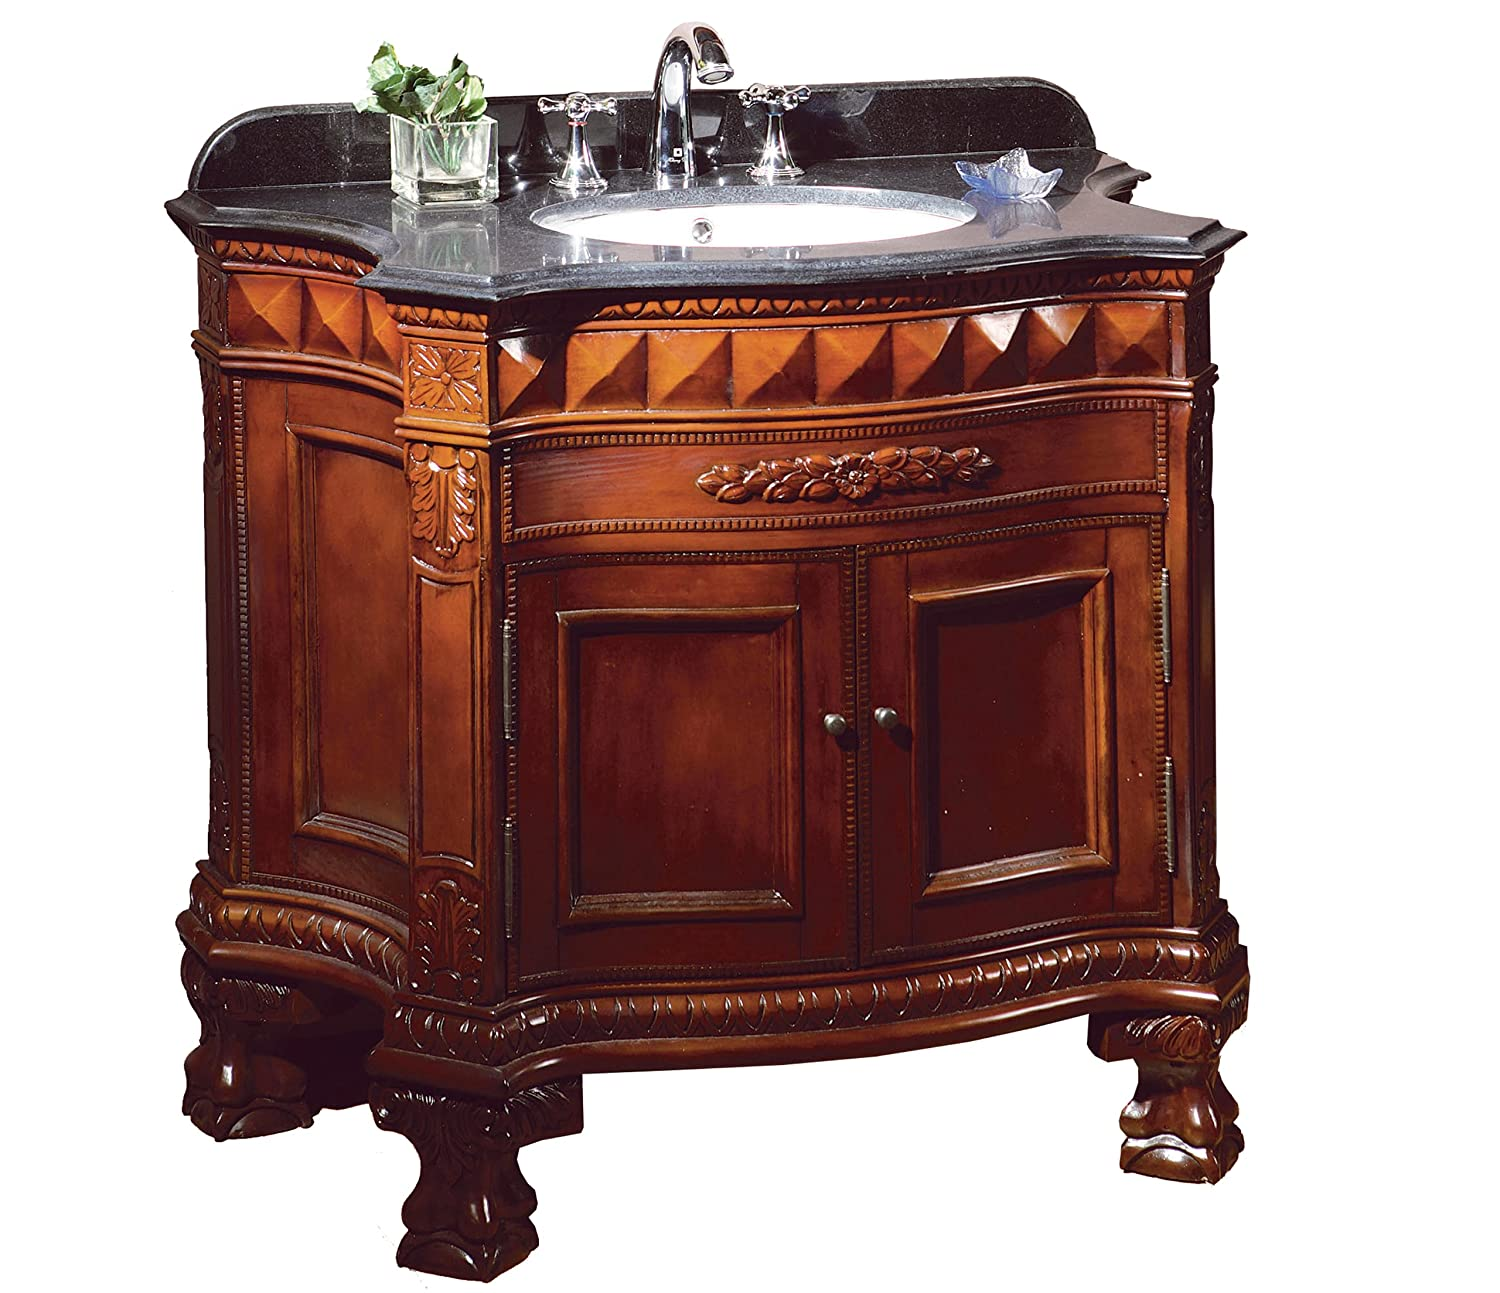 Ove Decors Buckingham Bathroom Inch Vanity Ensemble With - 36 x 19 bathroom vanity for bathroom decor ideas